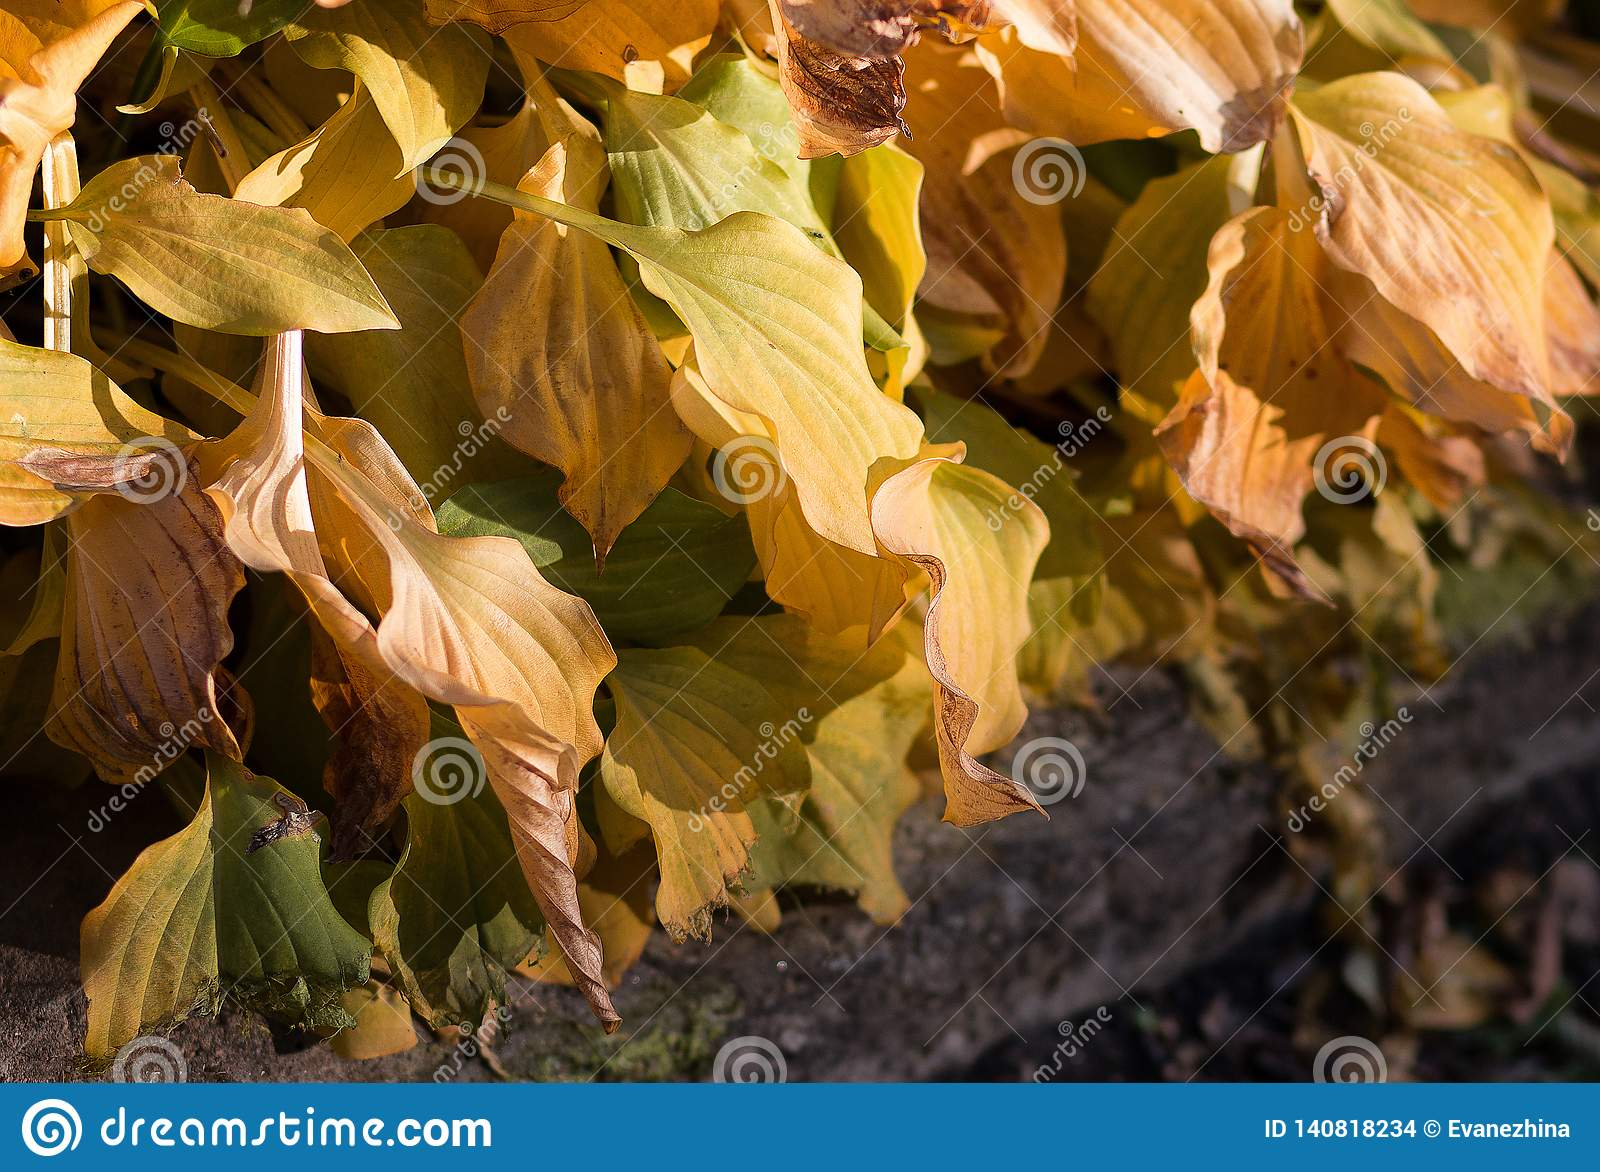 Golden Hosta Foliage In Autumn In Park Stock Photo Image Of Plant